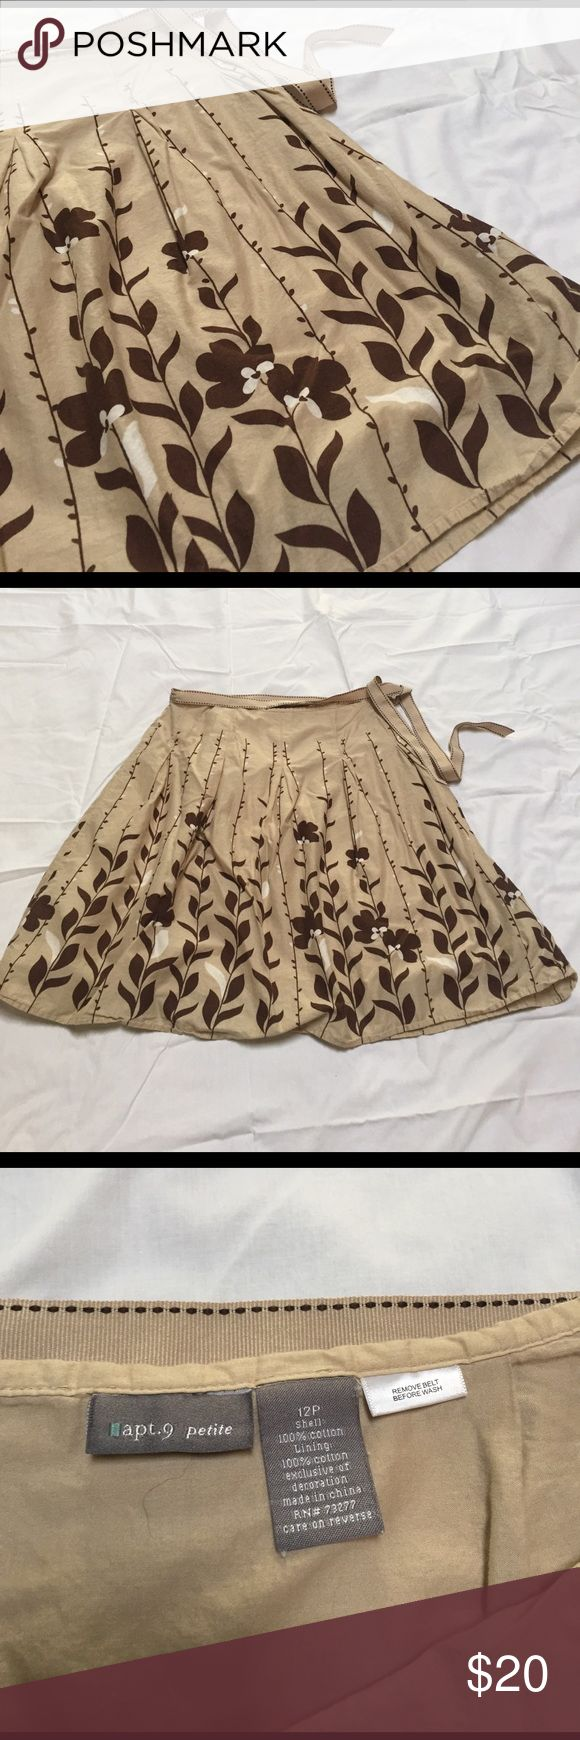 """Apt. 9 petite skirt Tan with brown and white floral pattern. Fully lined. 15.5"""" across the waist,  23"""" length Apt. 9 Skirts Circle & Skater"""